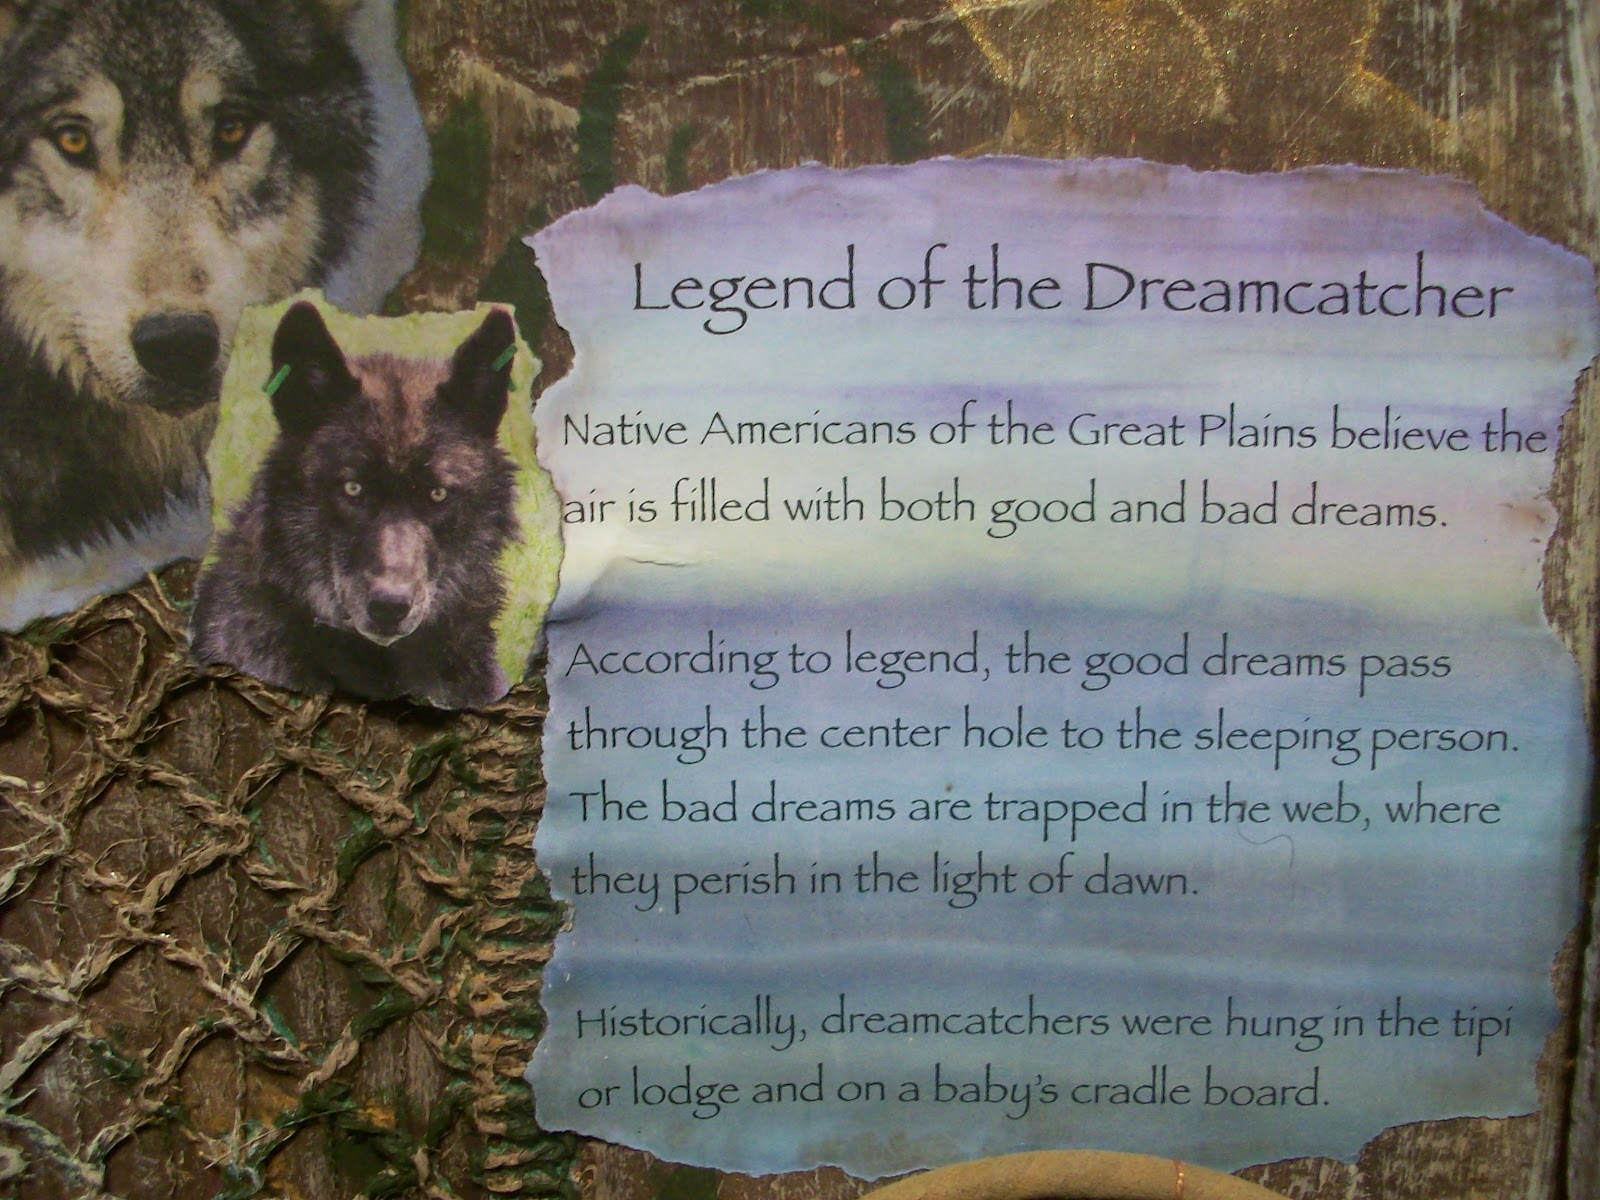 DREAM CATCHERS: LEGENDS AND MEANINGS